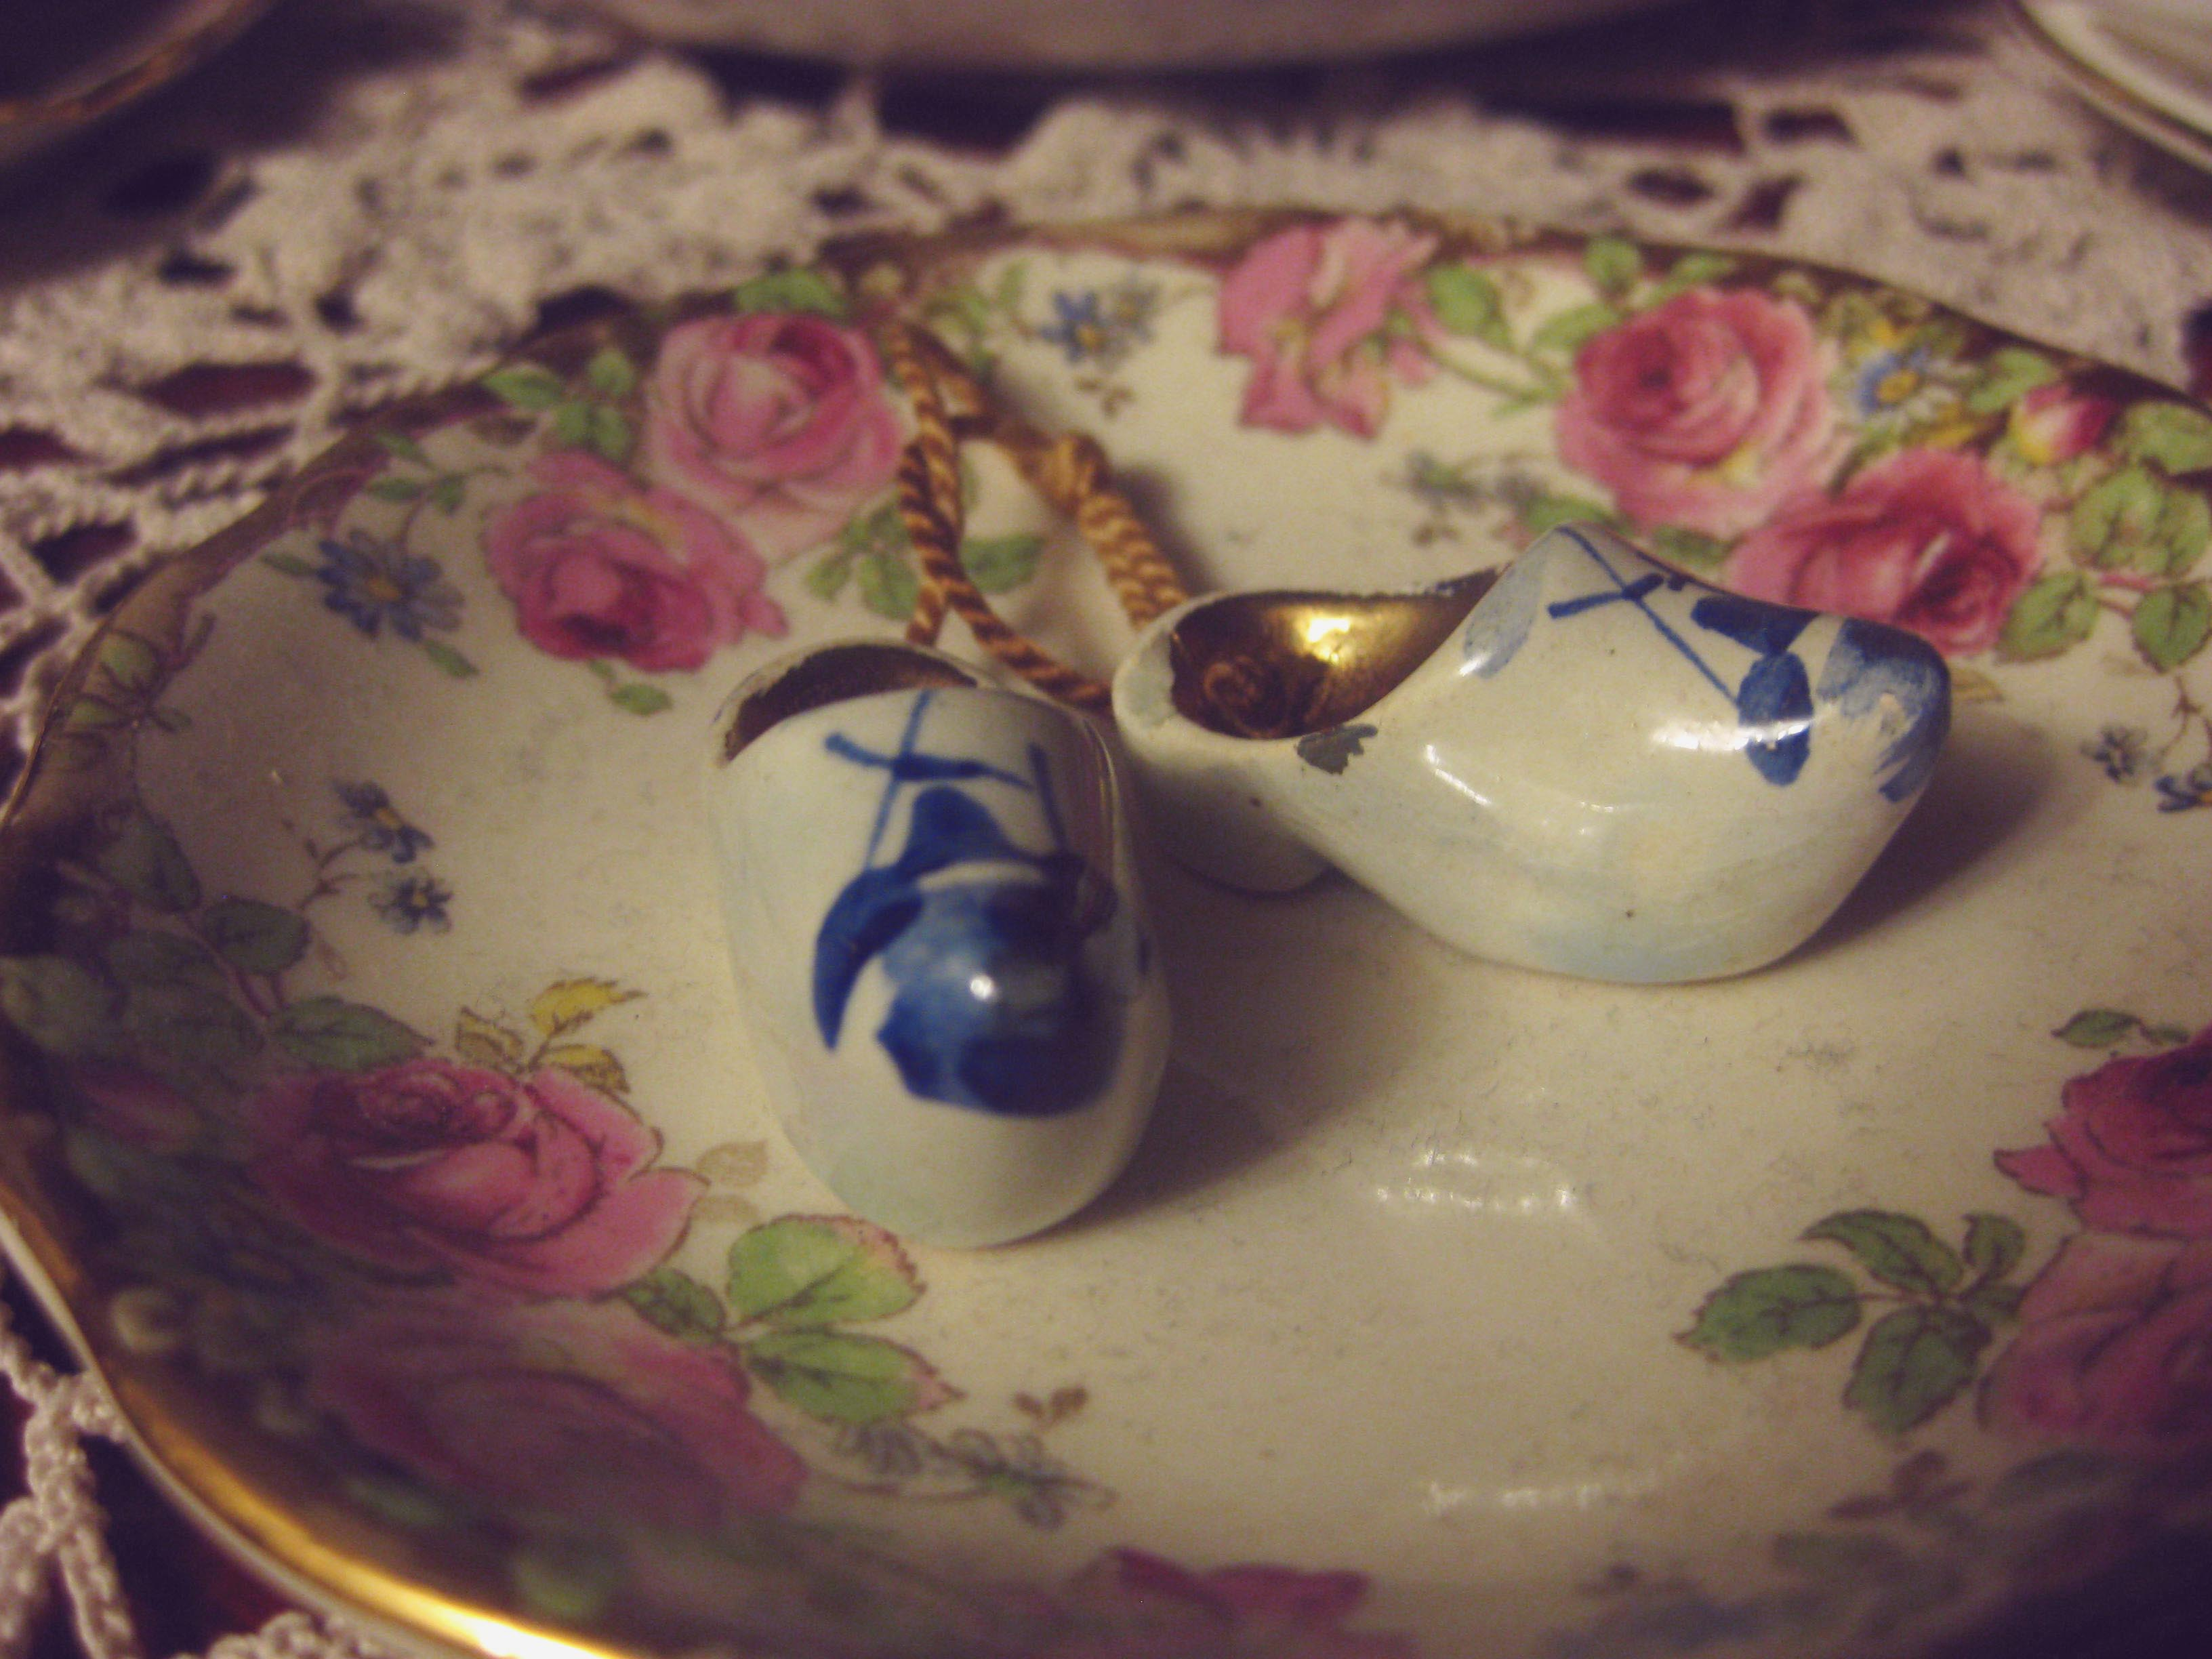 Macro shot of a pair of tiny white porcelain clogs with a blue windmill on each toe. They sit in a small condiment bowl that is bordered with a beautiful floral pattern with large pink roses.